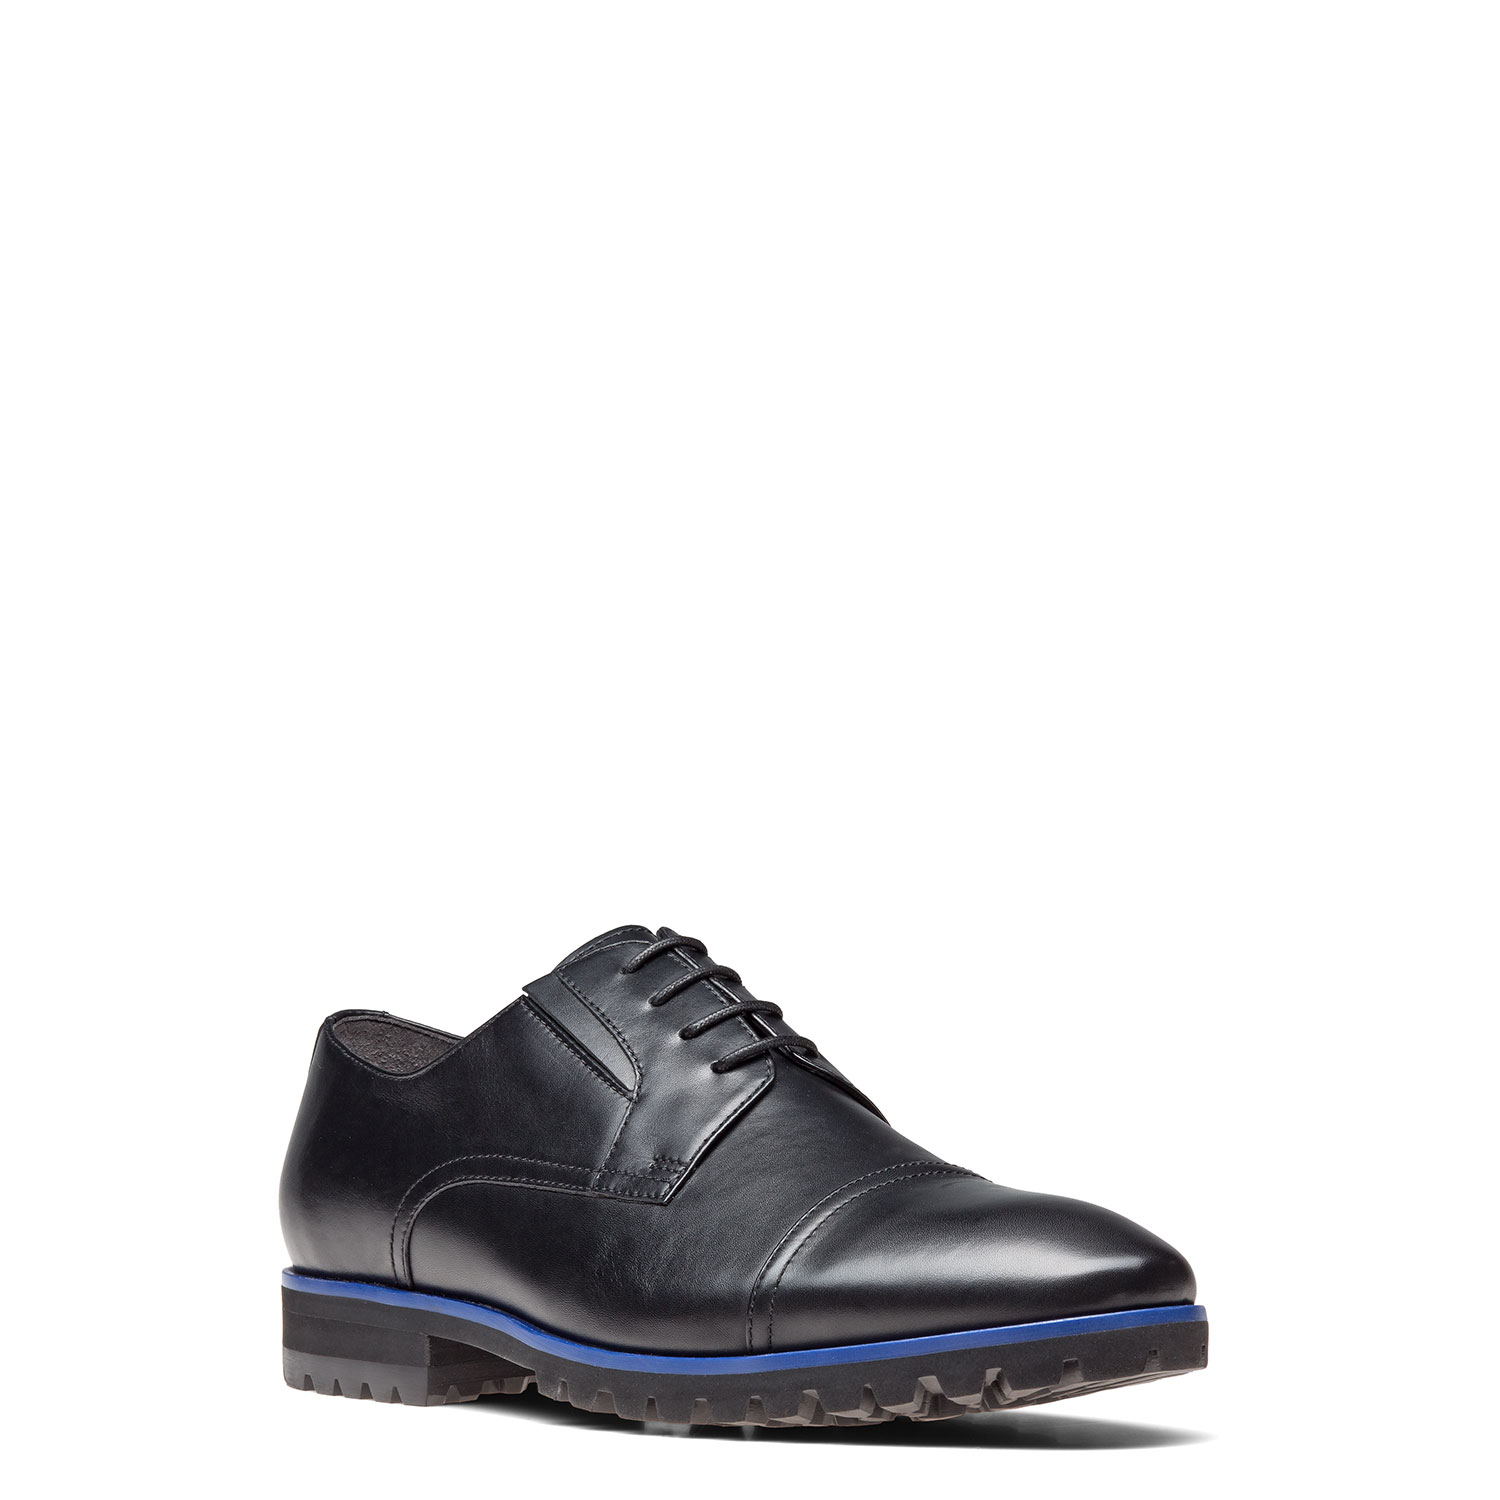 Men's shoes CARLO PAZOLINI HM-PEN1-1